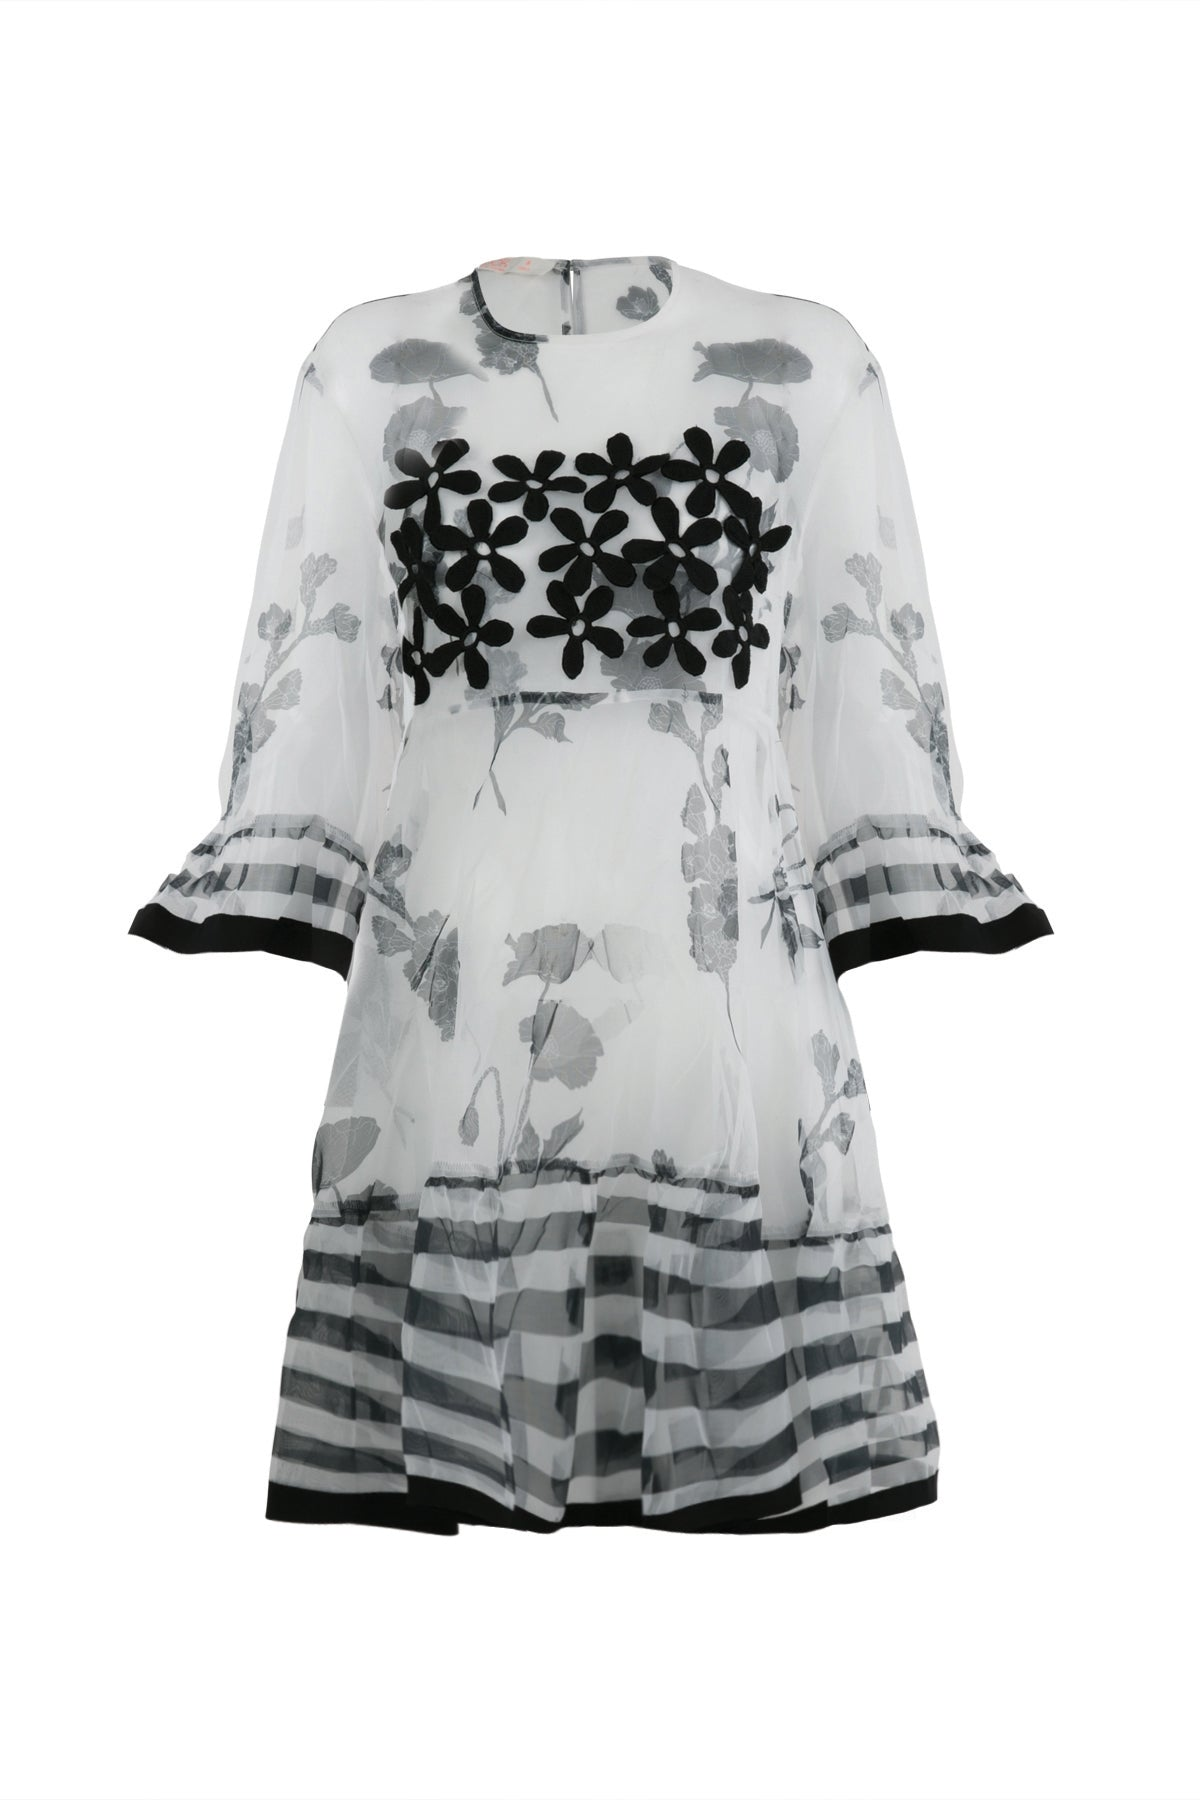 Coop In Good Shape Sheer Textured Dress Shop New Zealand Designer Clothing Stockists